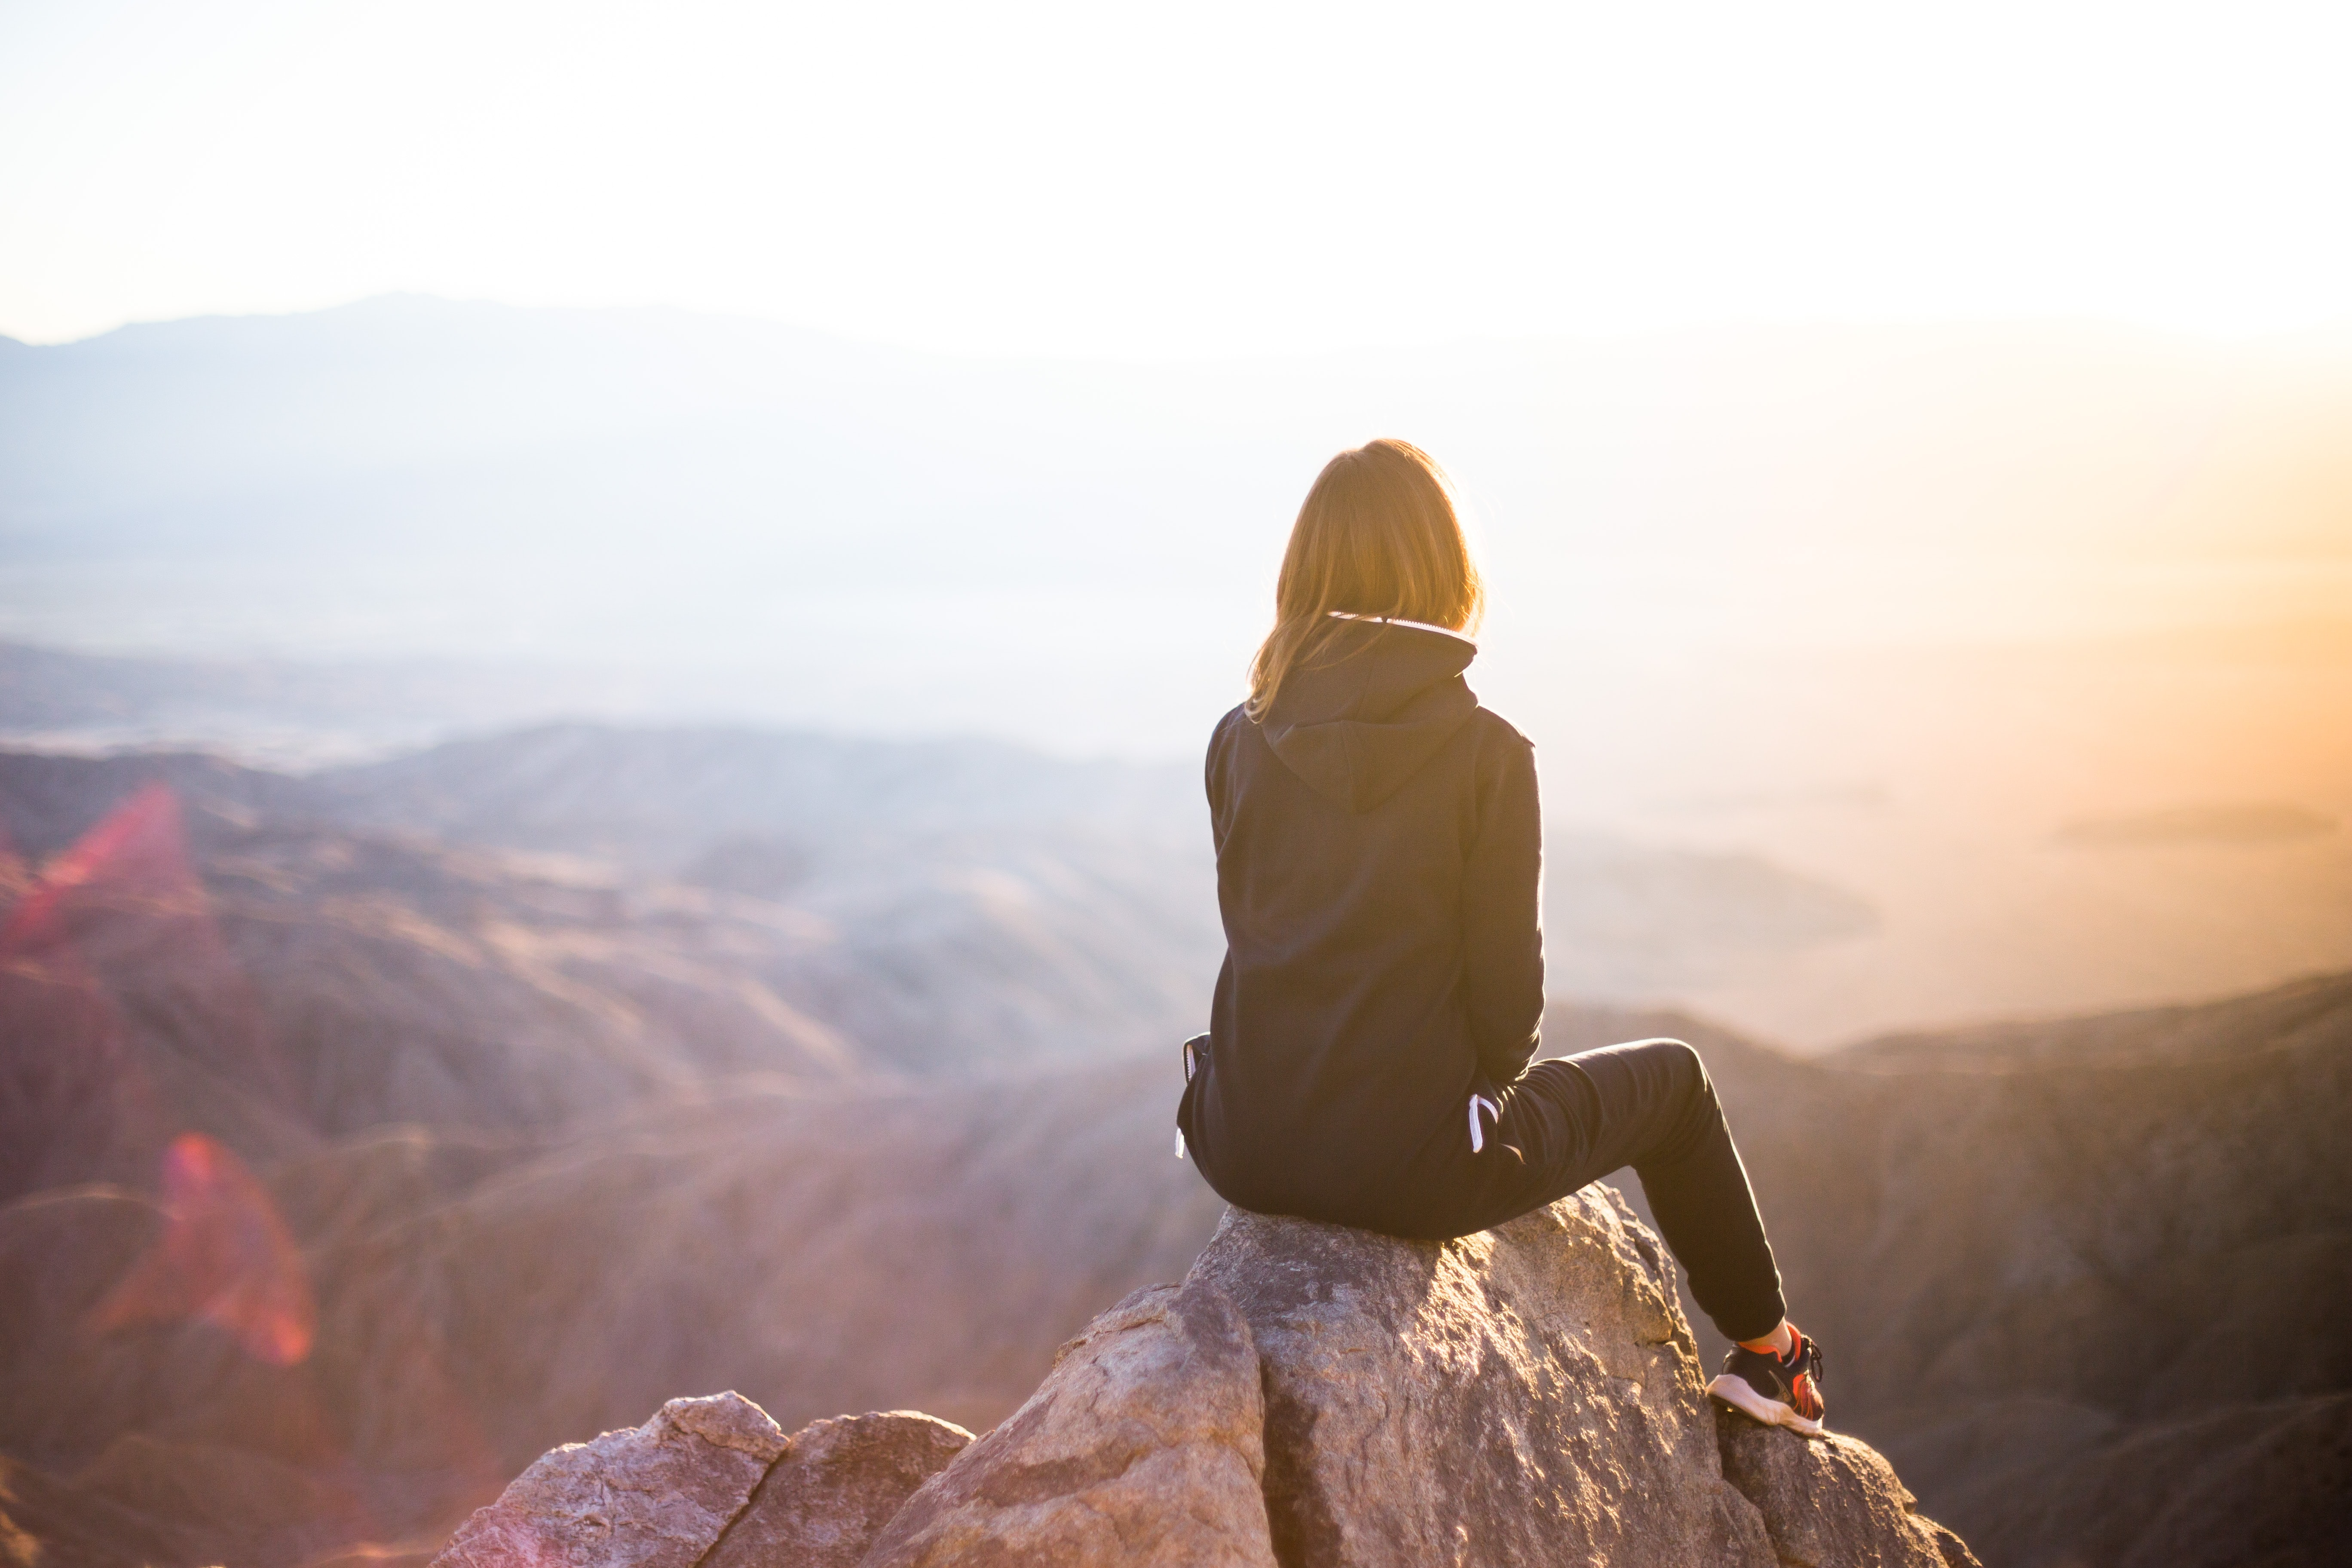 A woman sitting on a mountain top looking at the sunset